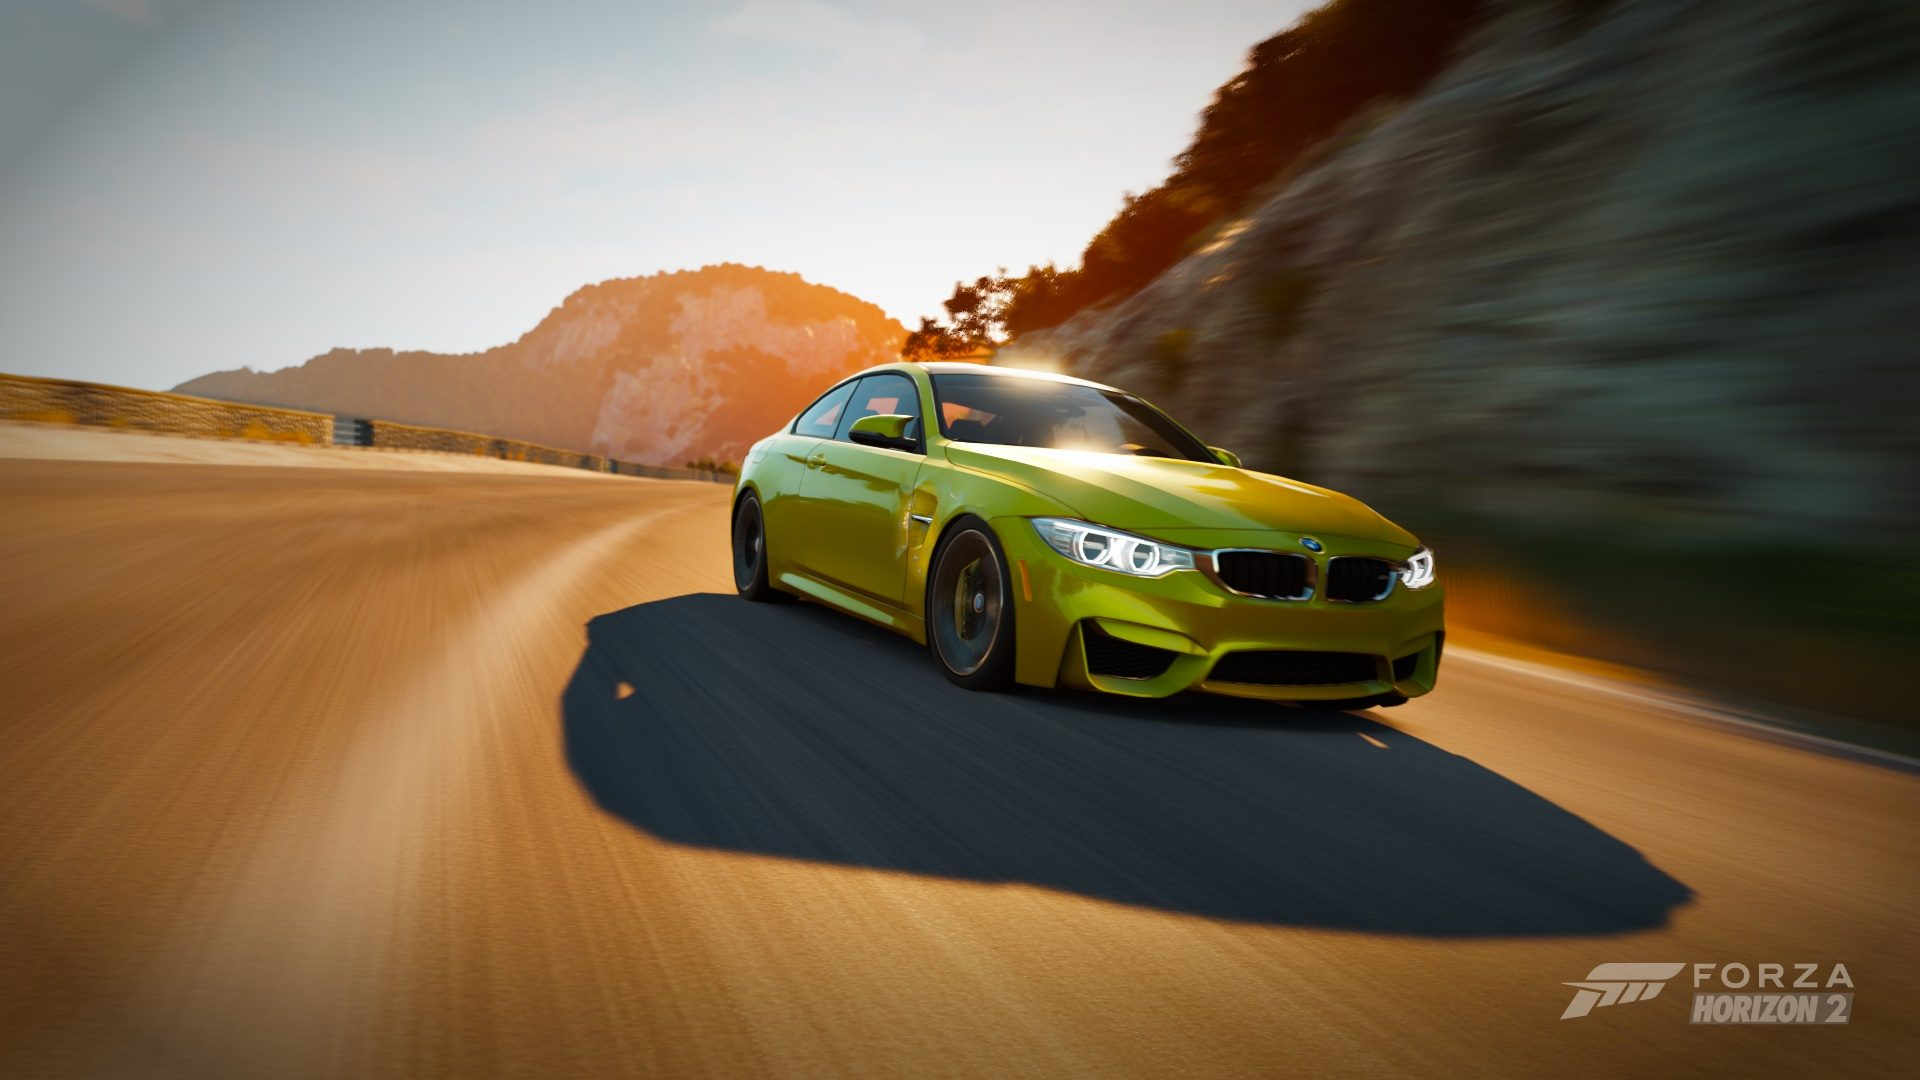 Bmw m4 suspension front.jpg